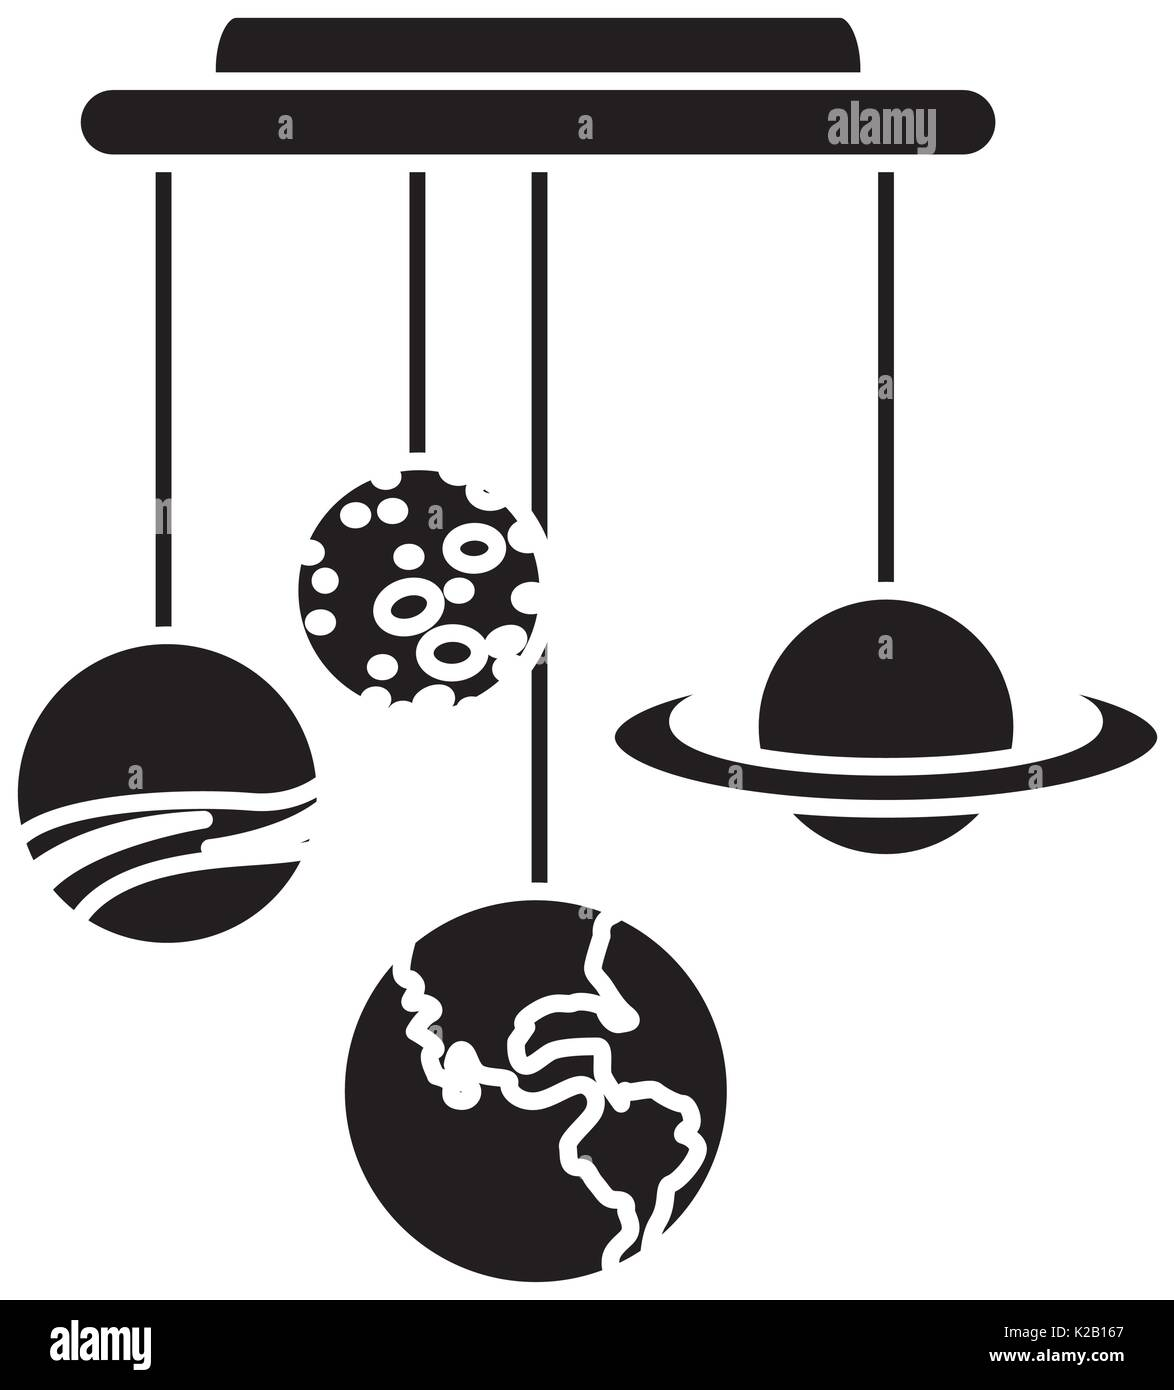 hanging earth and others planet space icon - Stock Image